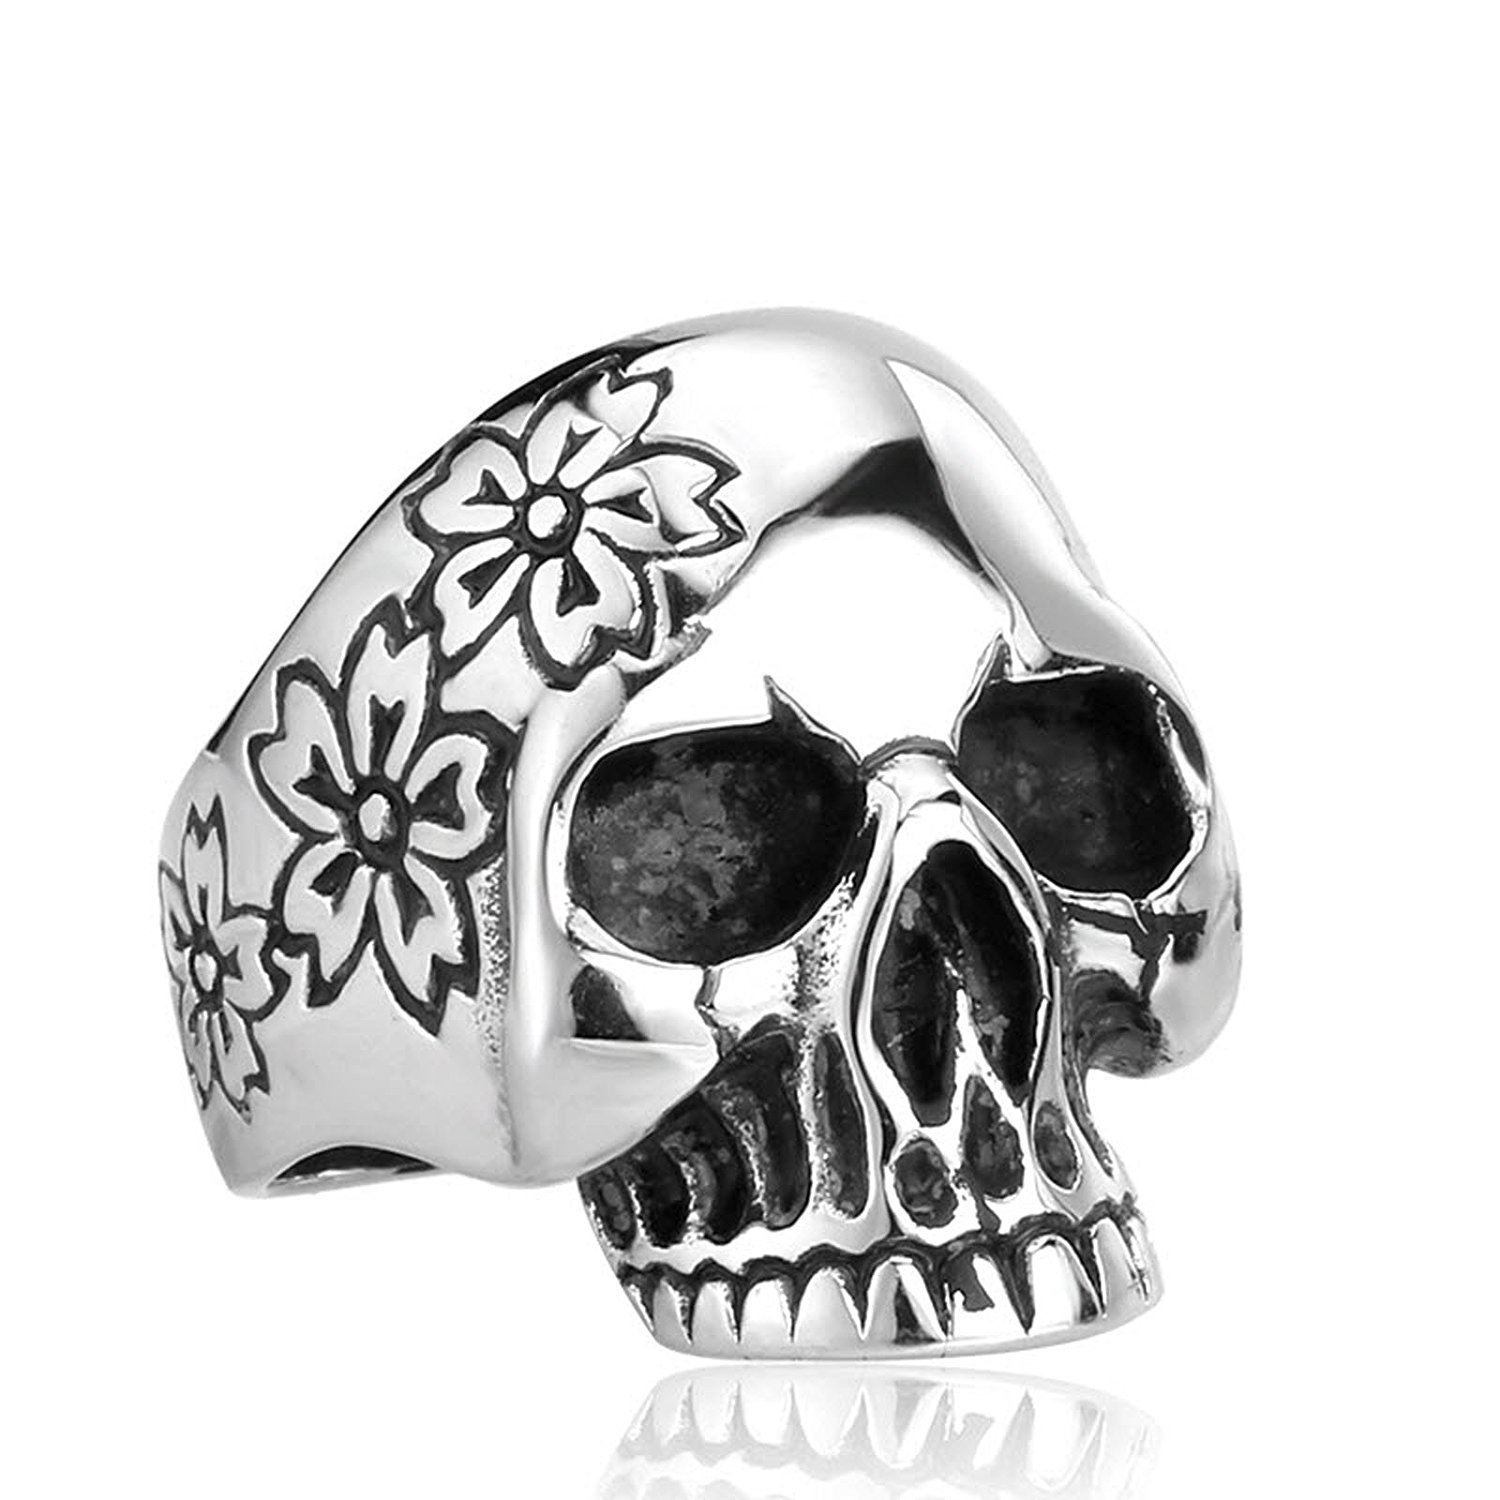 rings ring silver products skull bikerringshop gothic sterling mens punk skeleton hand